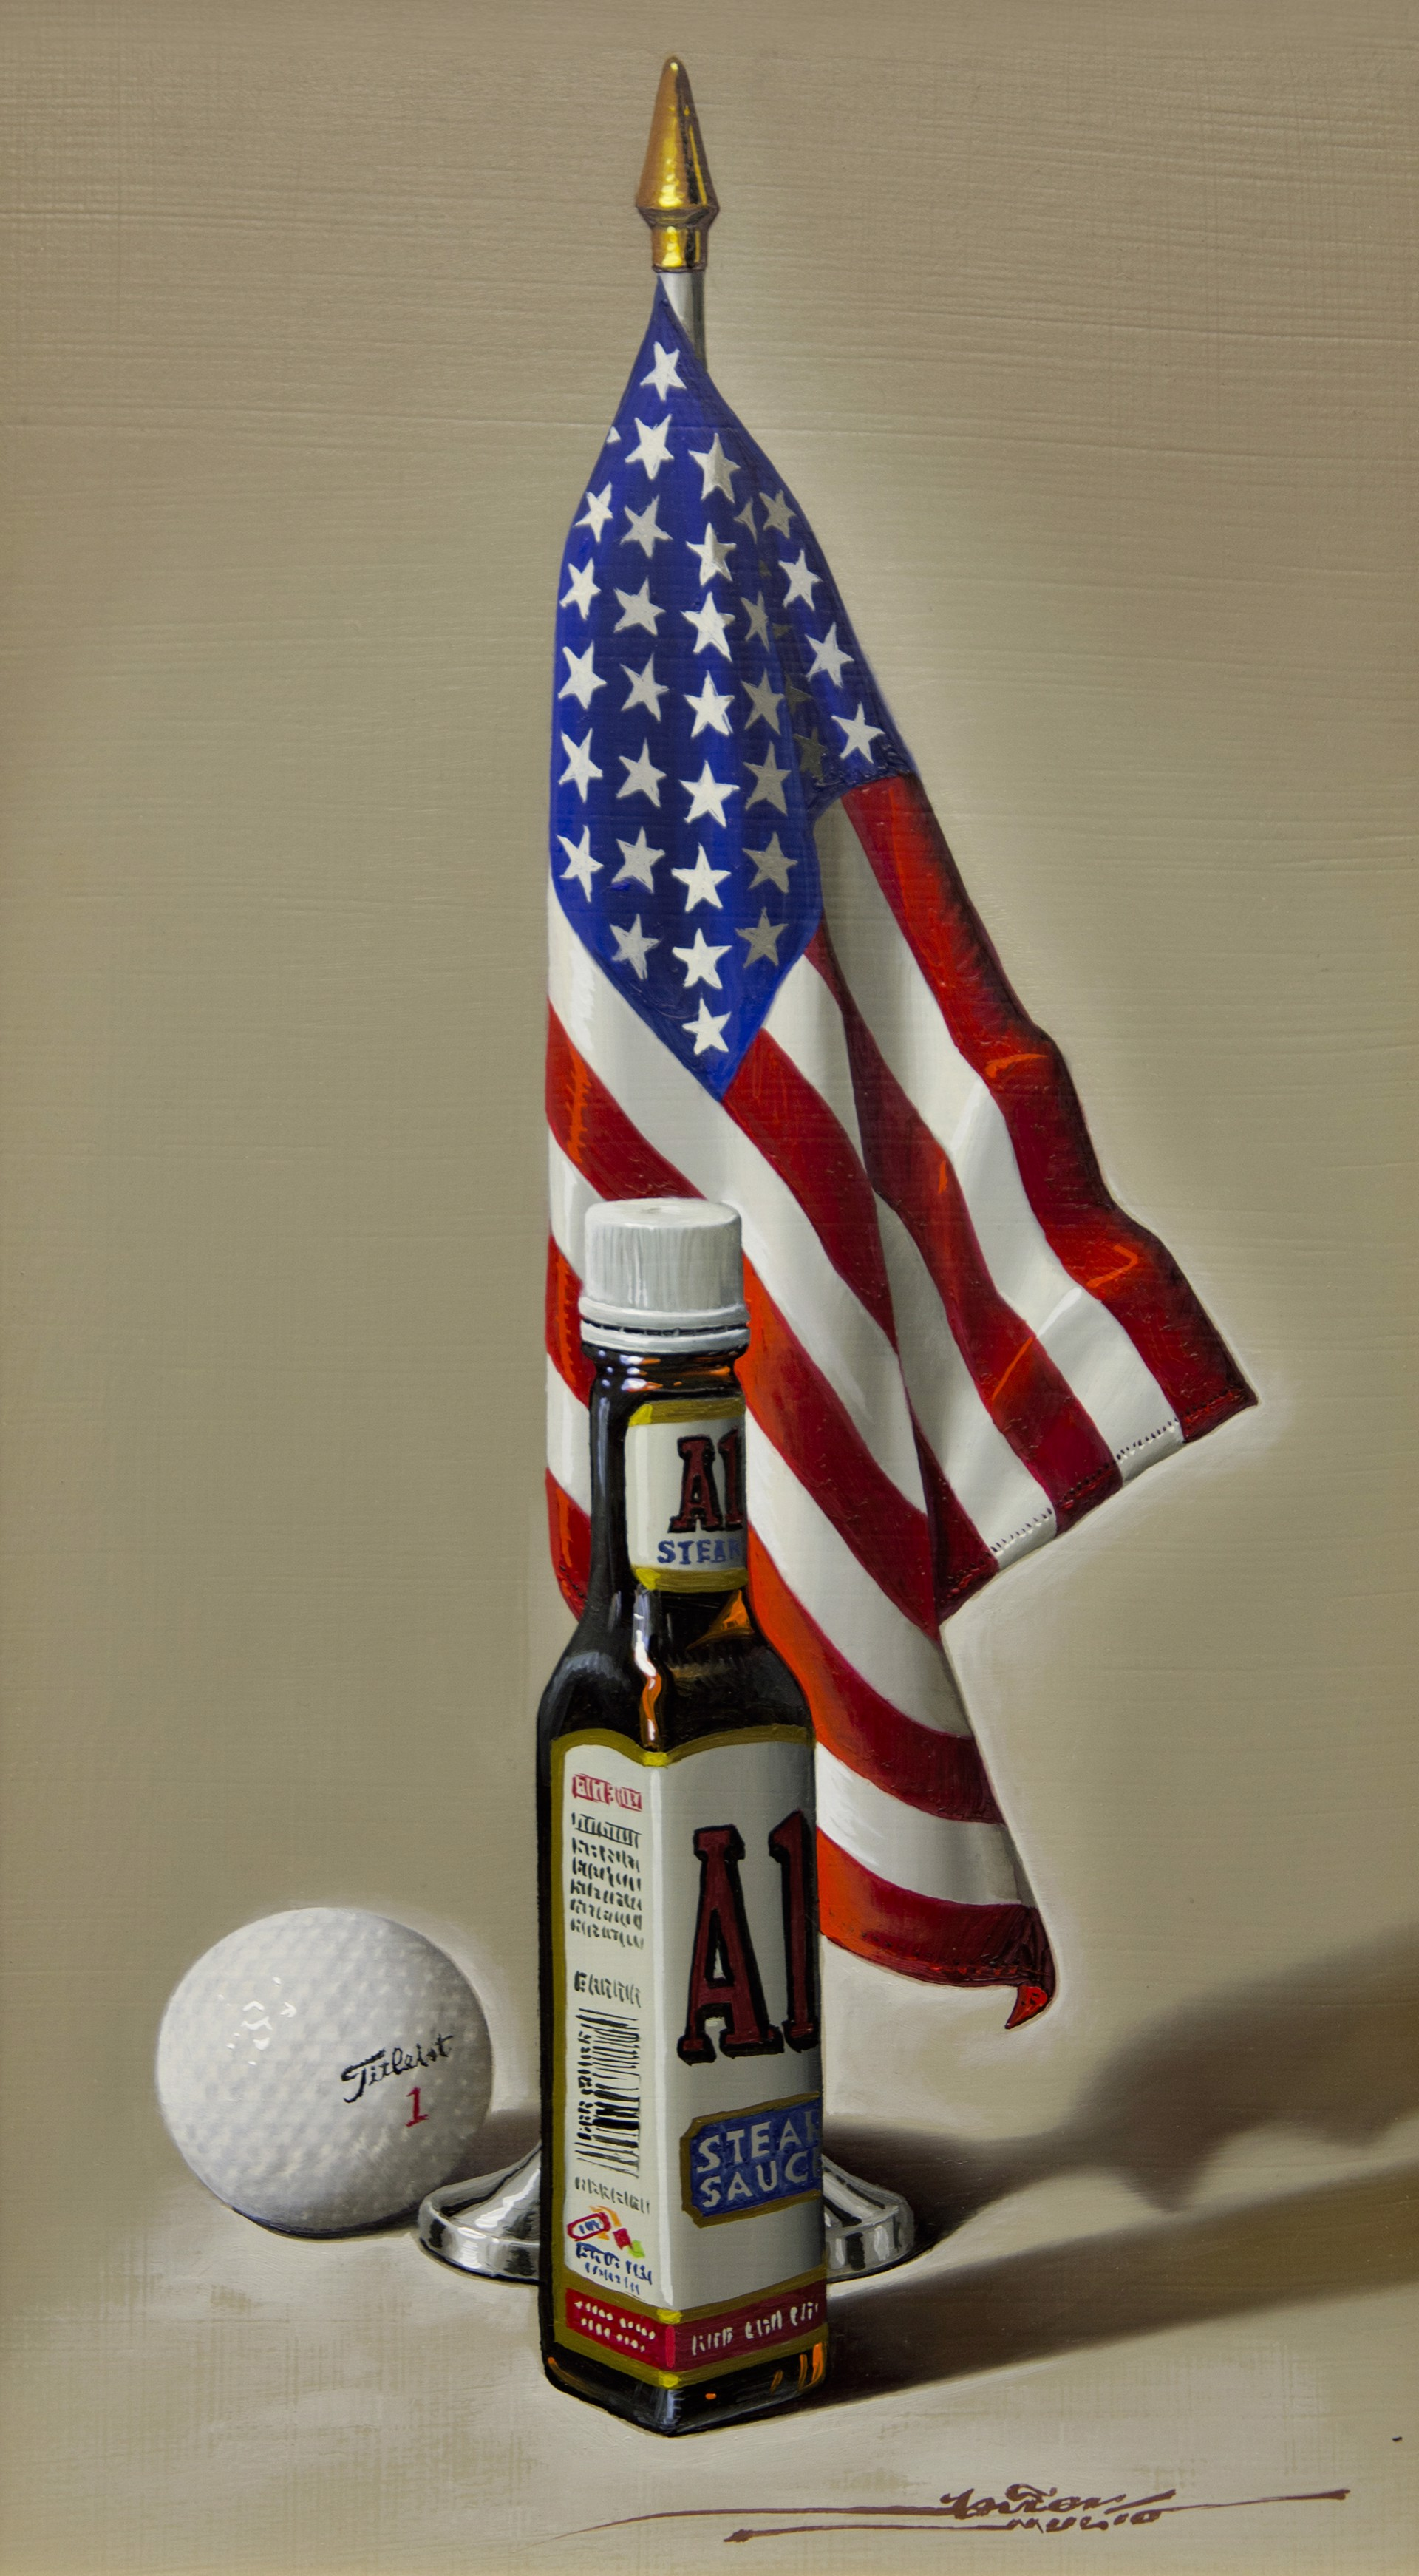 America is A1 by Javier Mulio